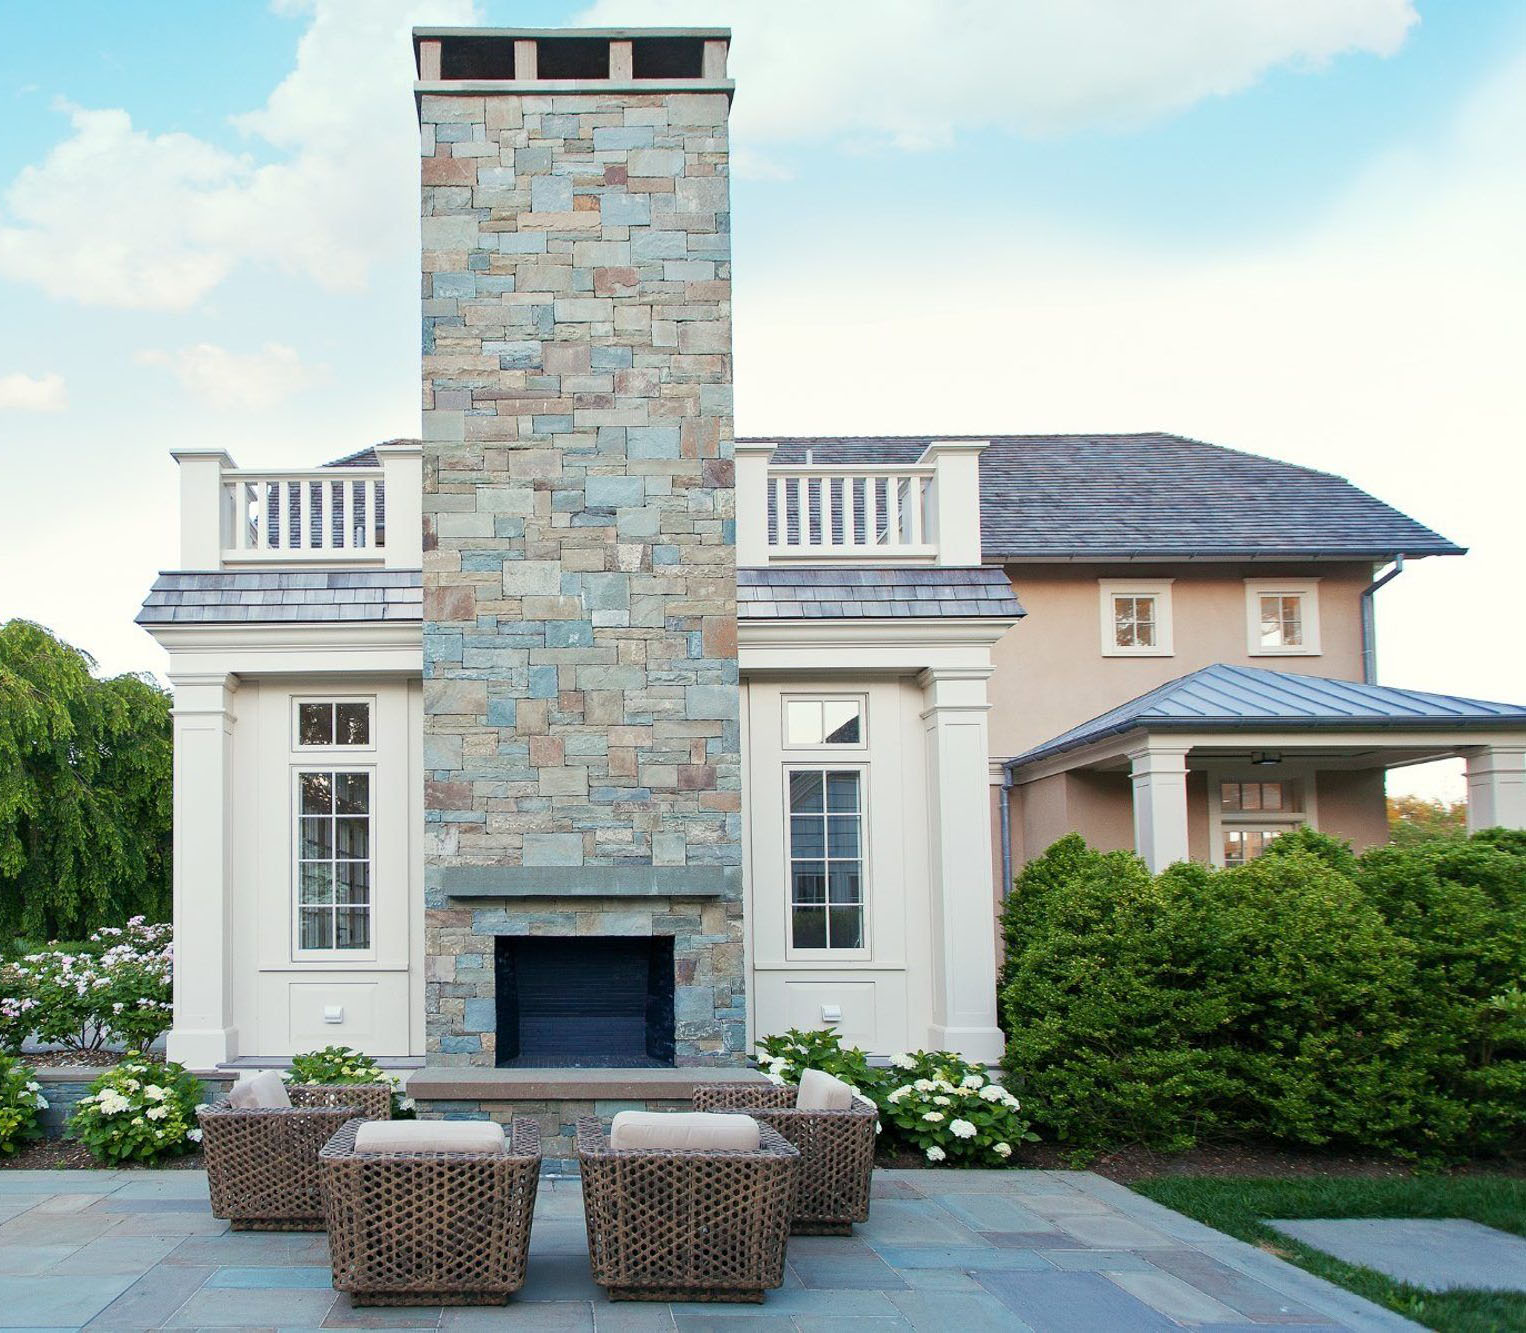 Huge outdoor fireplace with chimney built on a blue stone patio with cast concrete raised hearth and mantle.